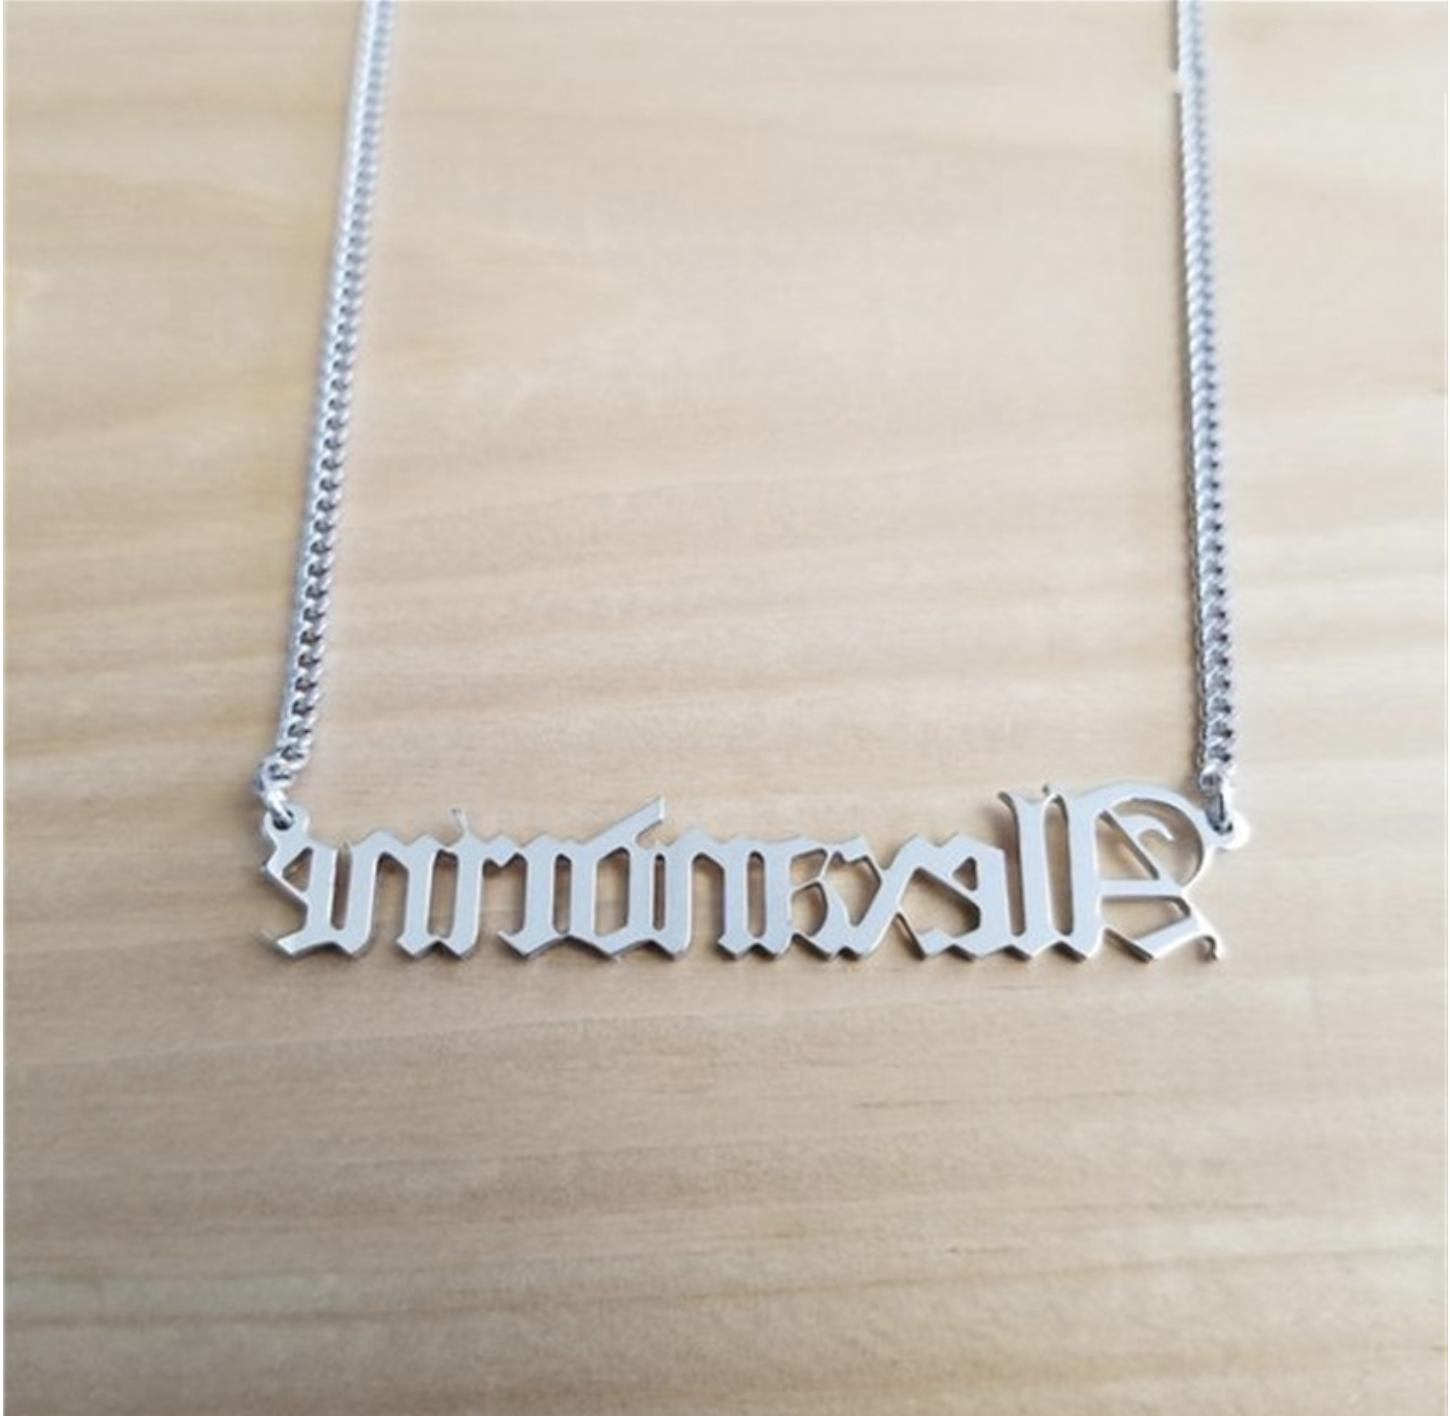 Personalized Name Chain Old English Custom Gift